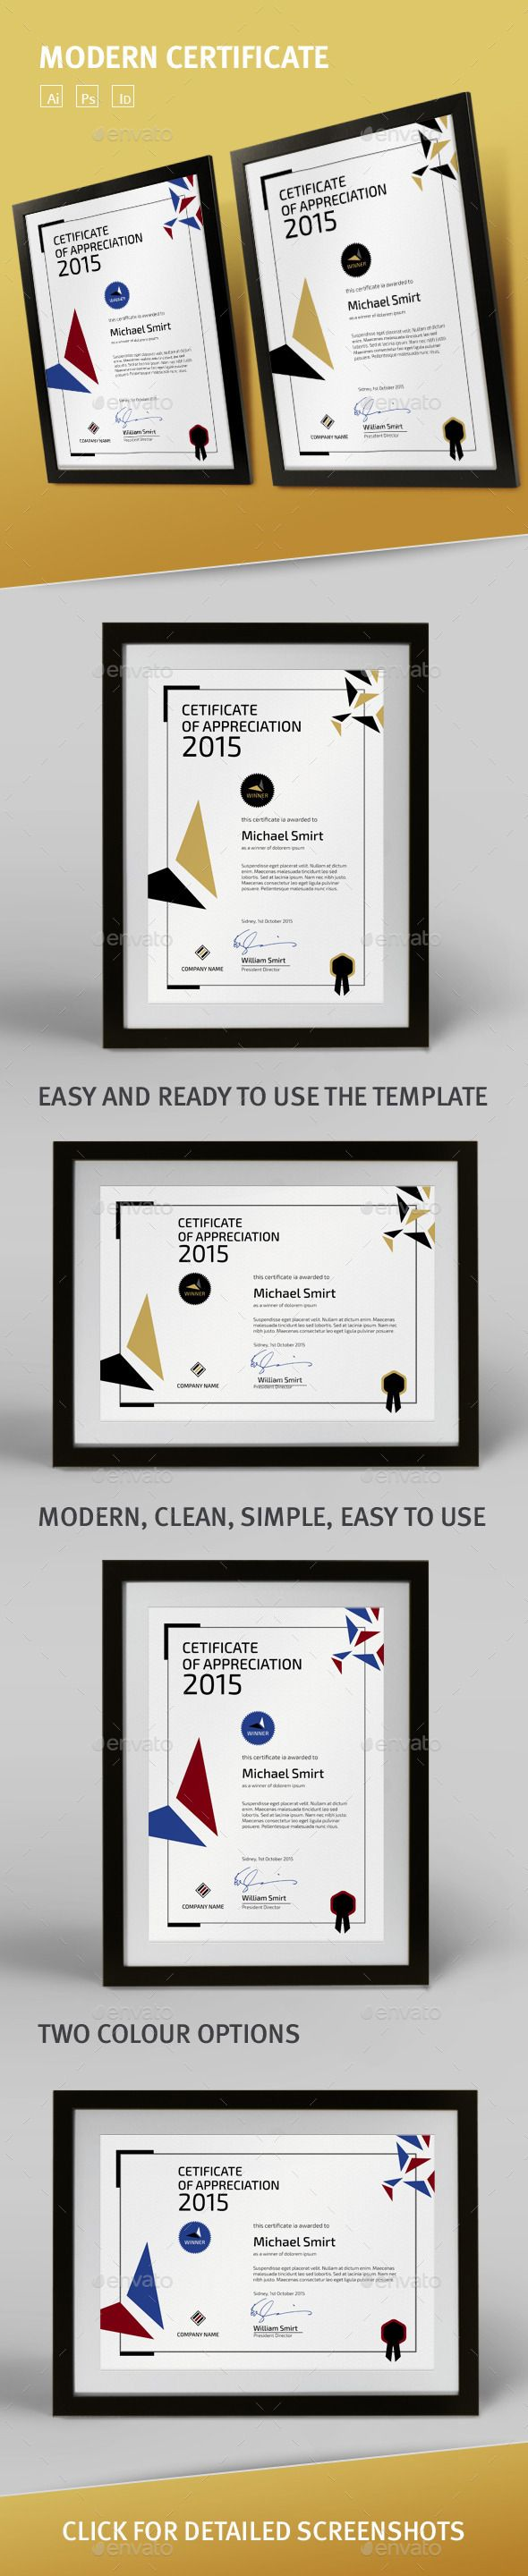 #Modern #Certificate Template - Certificates #Stationery Download here: https://graphicriver.net/item/modern-certificate-template/9303972?ref=alena994